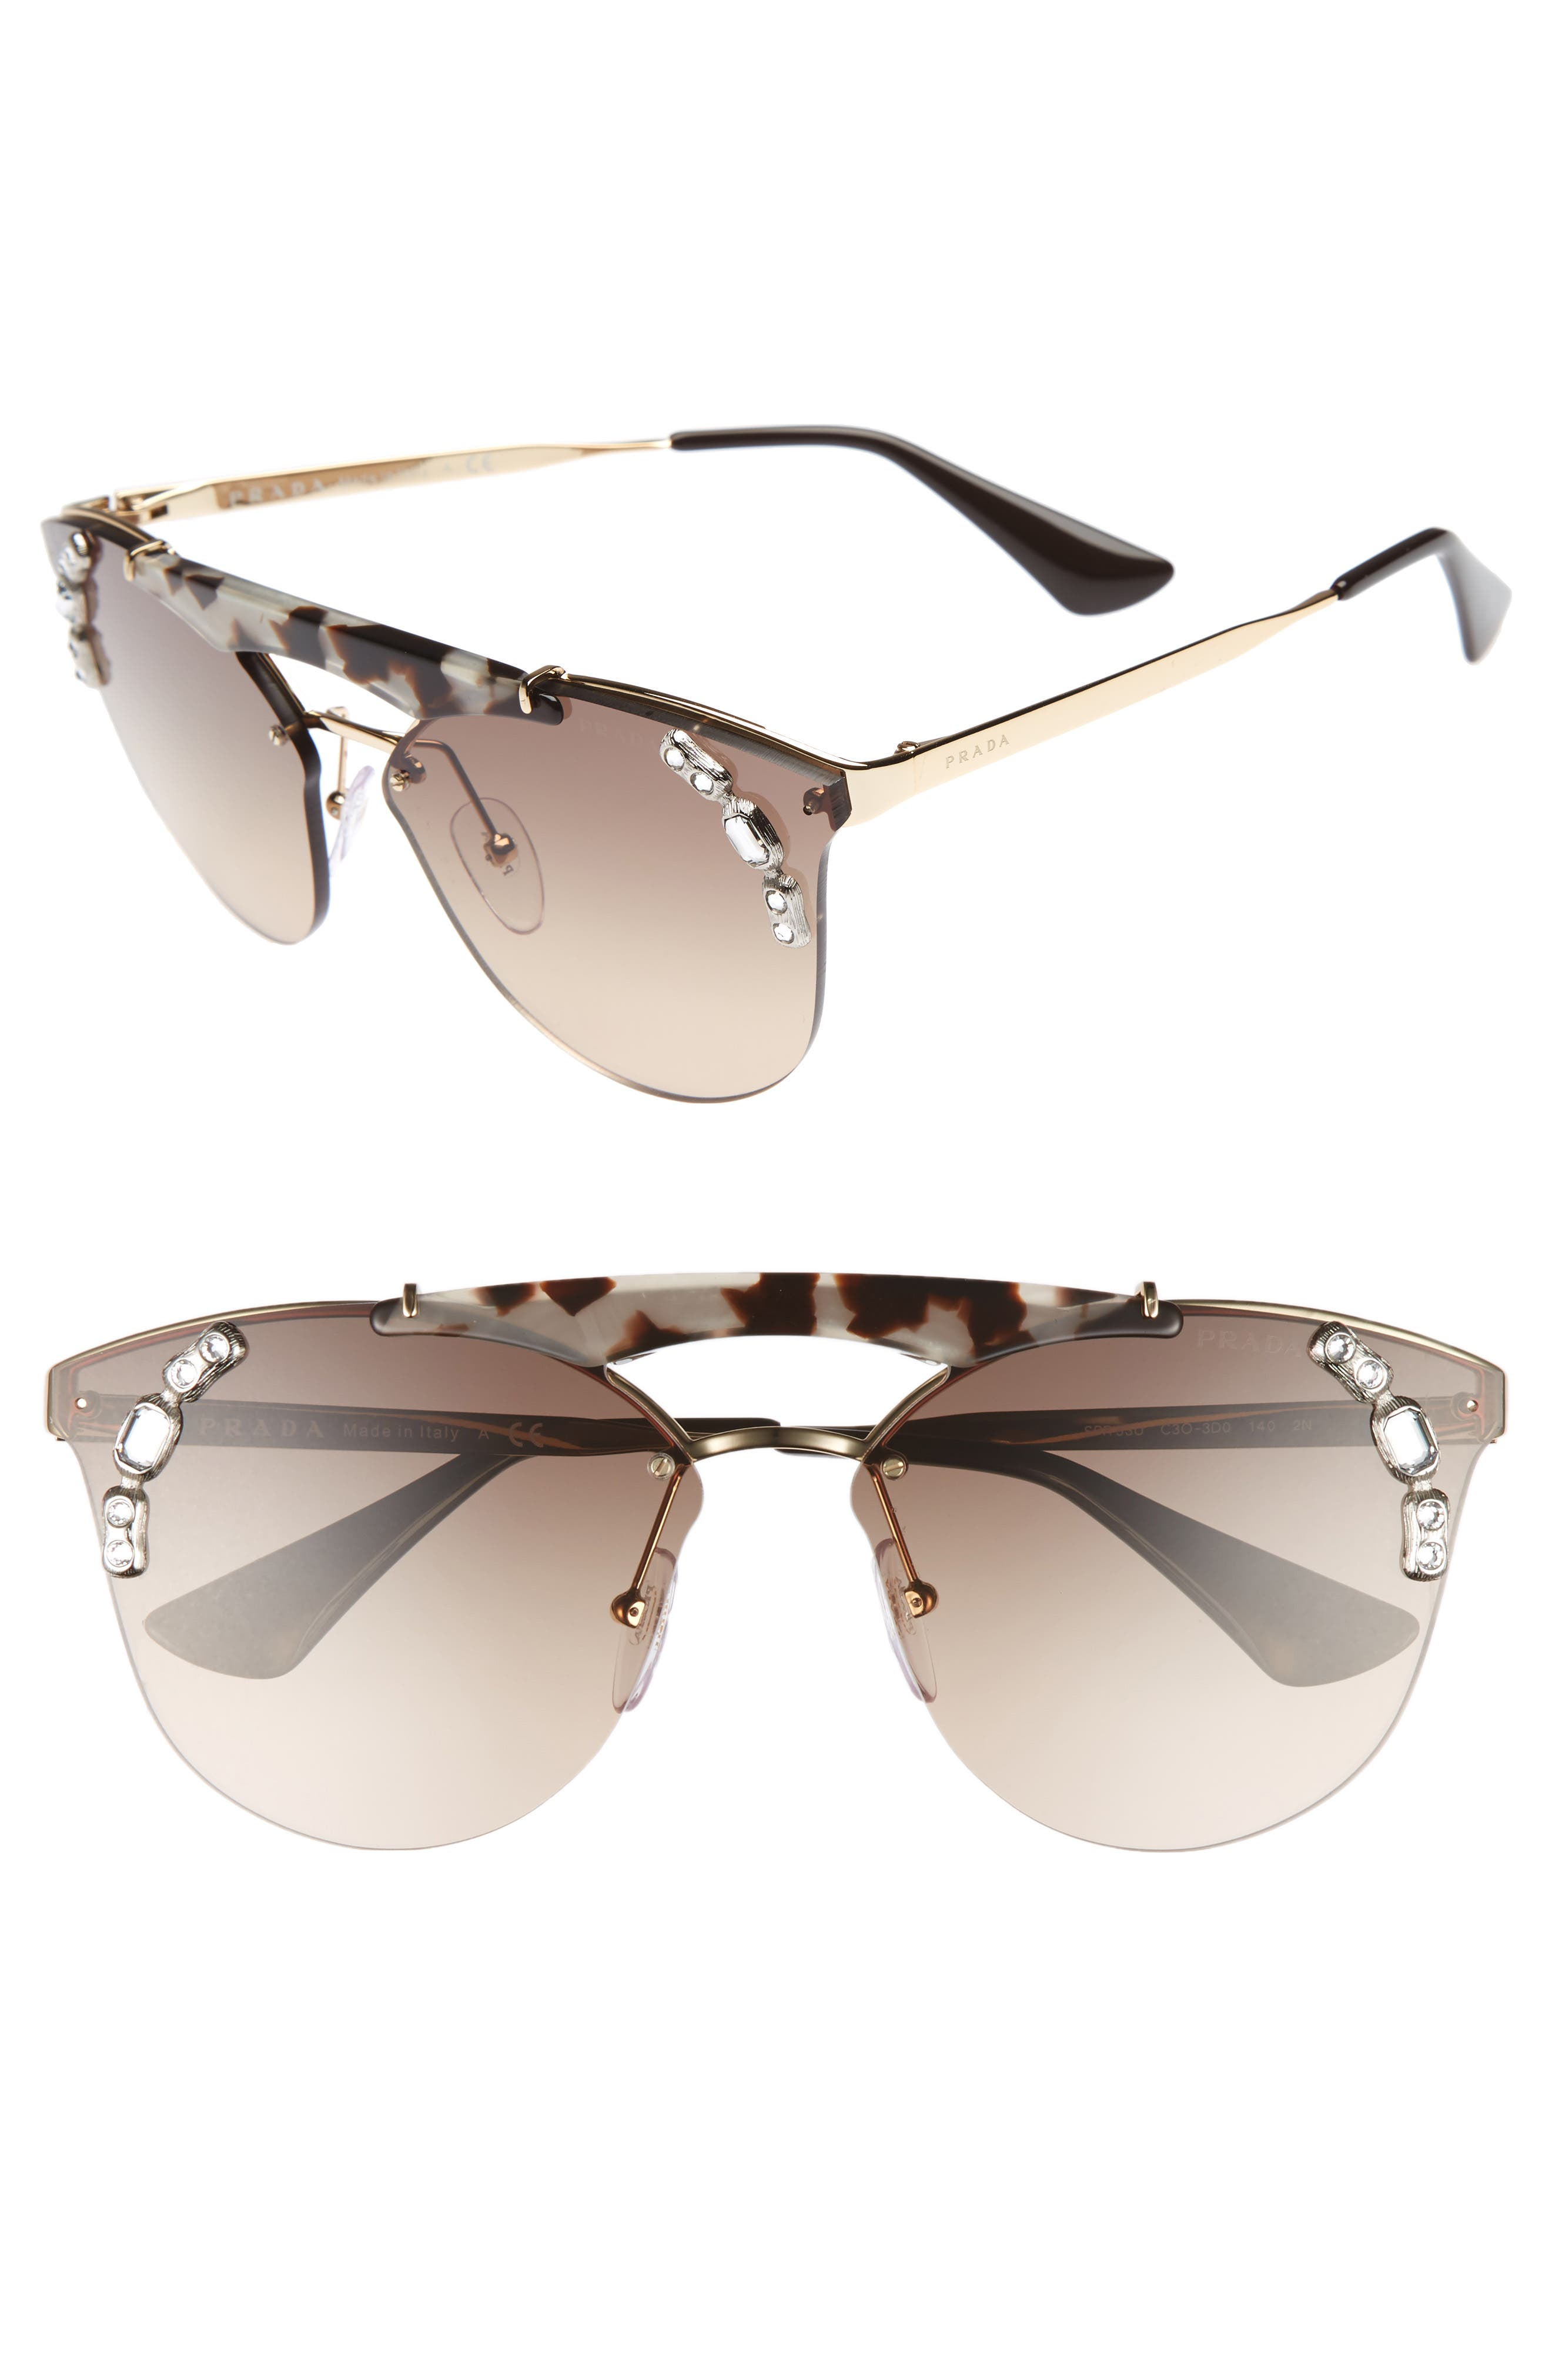 53mm Embellished Rimless Sunglasses,                             Main thumbnail 1, color,                             Gold/ Brown